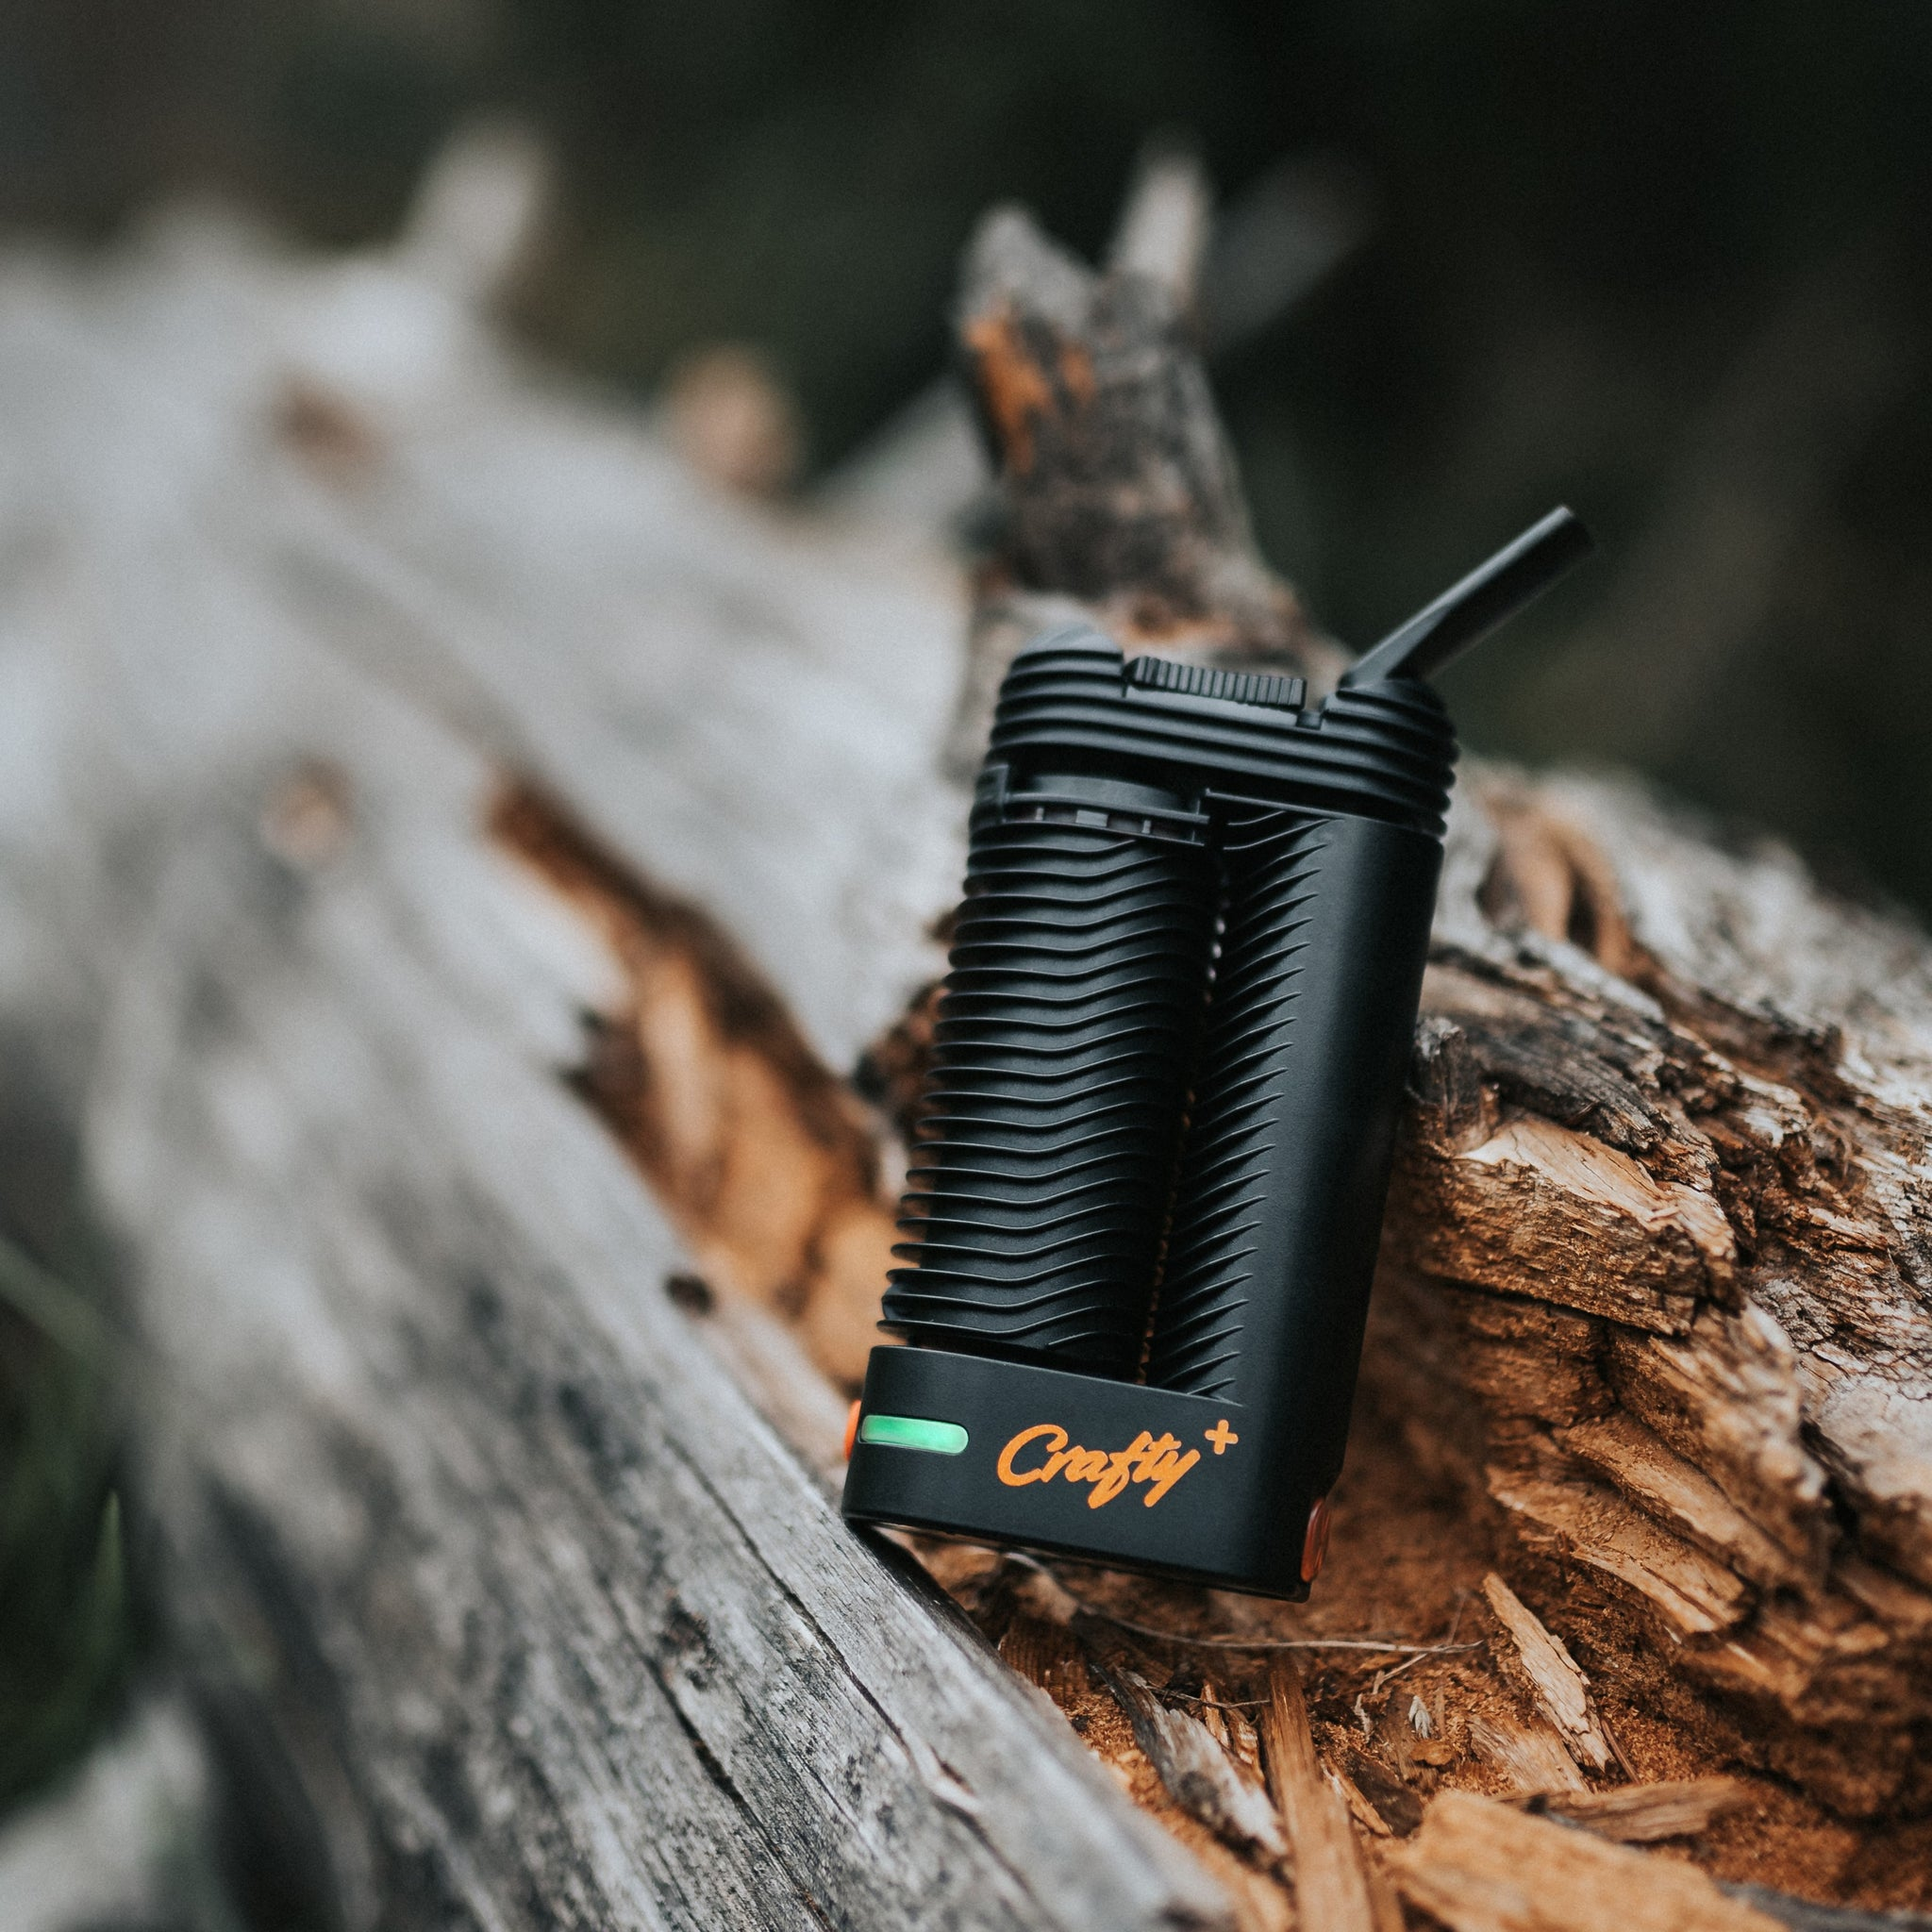 *NEW* Crafty+ Vaporizer